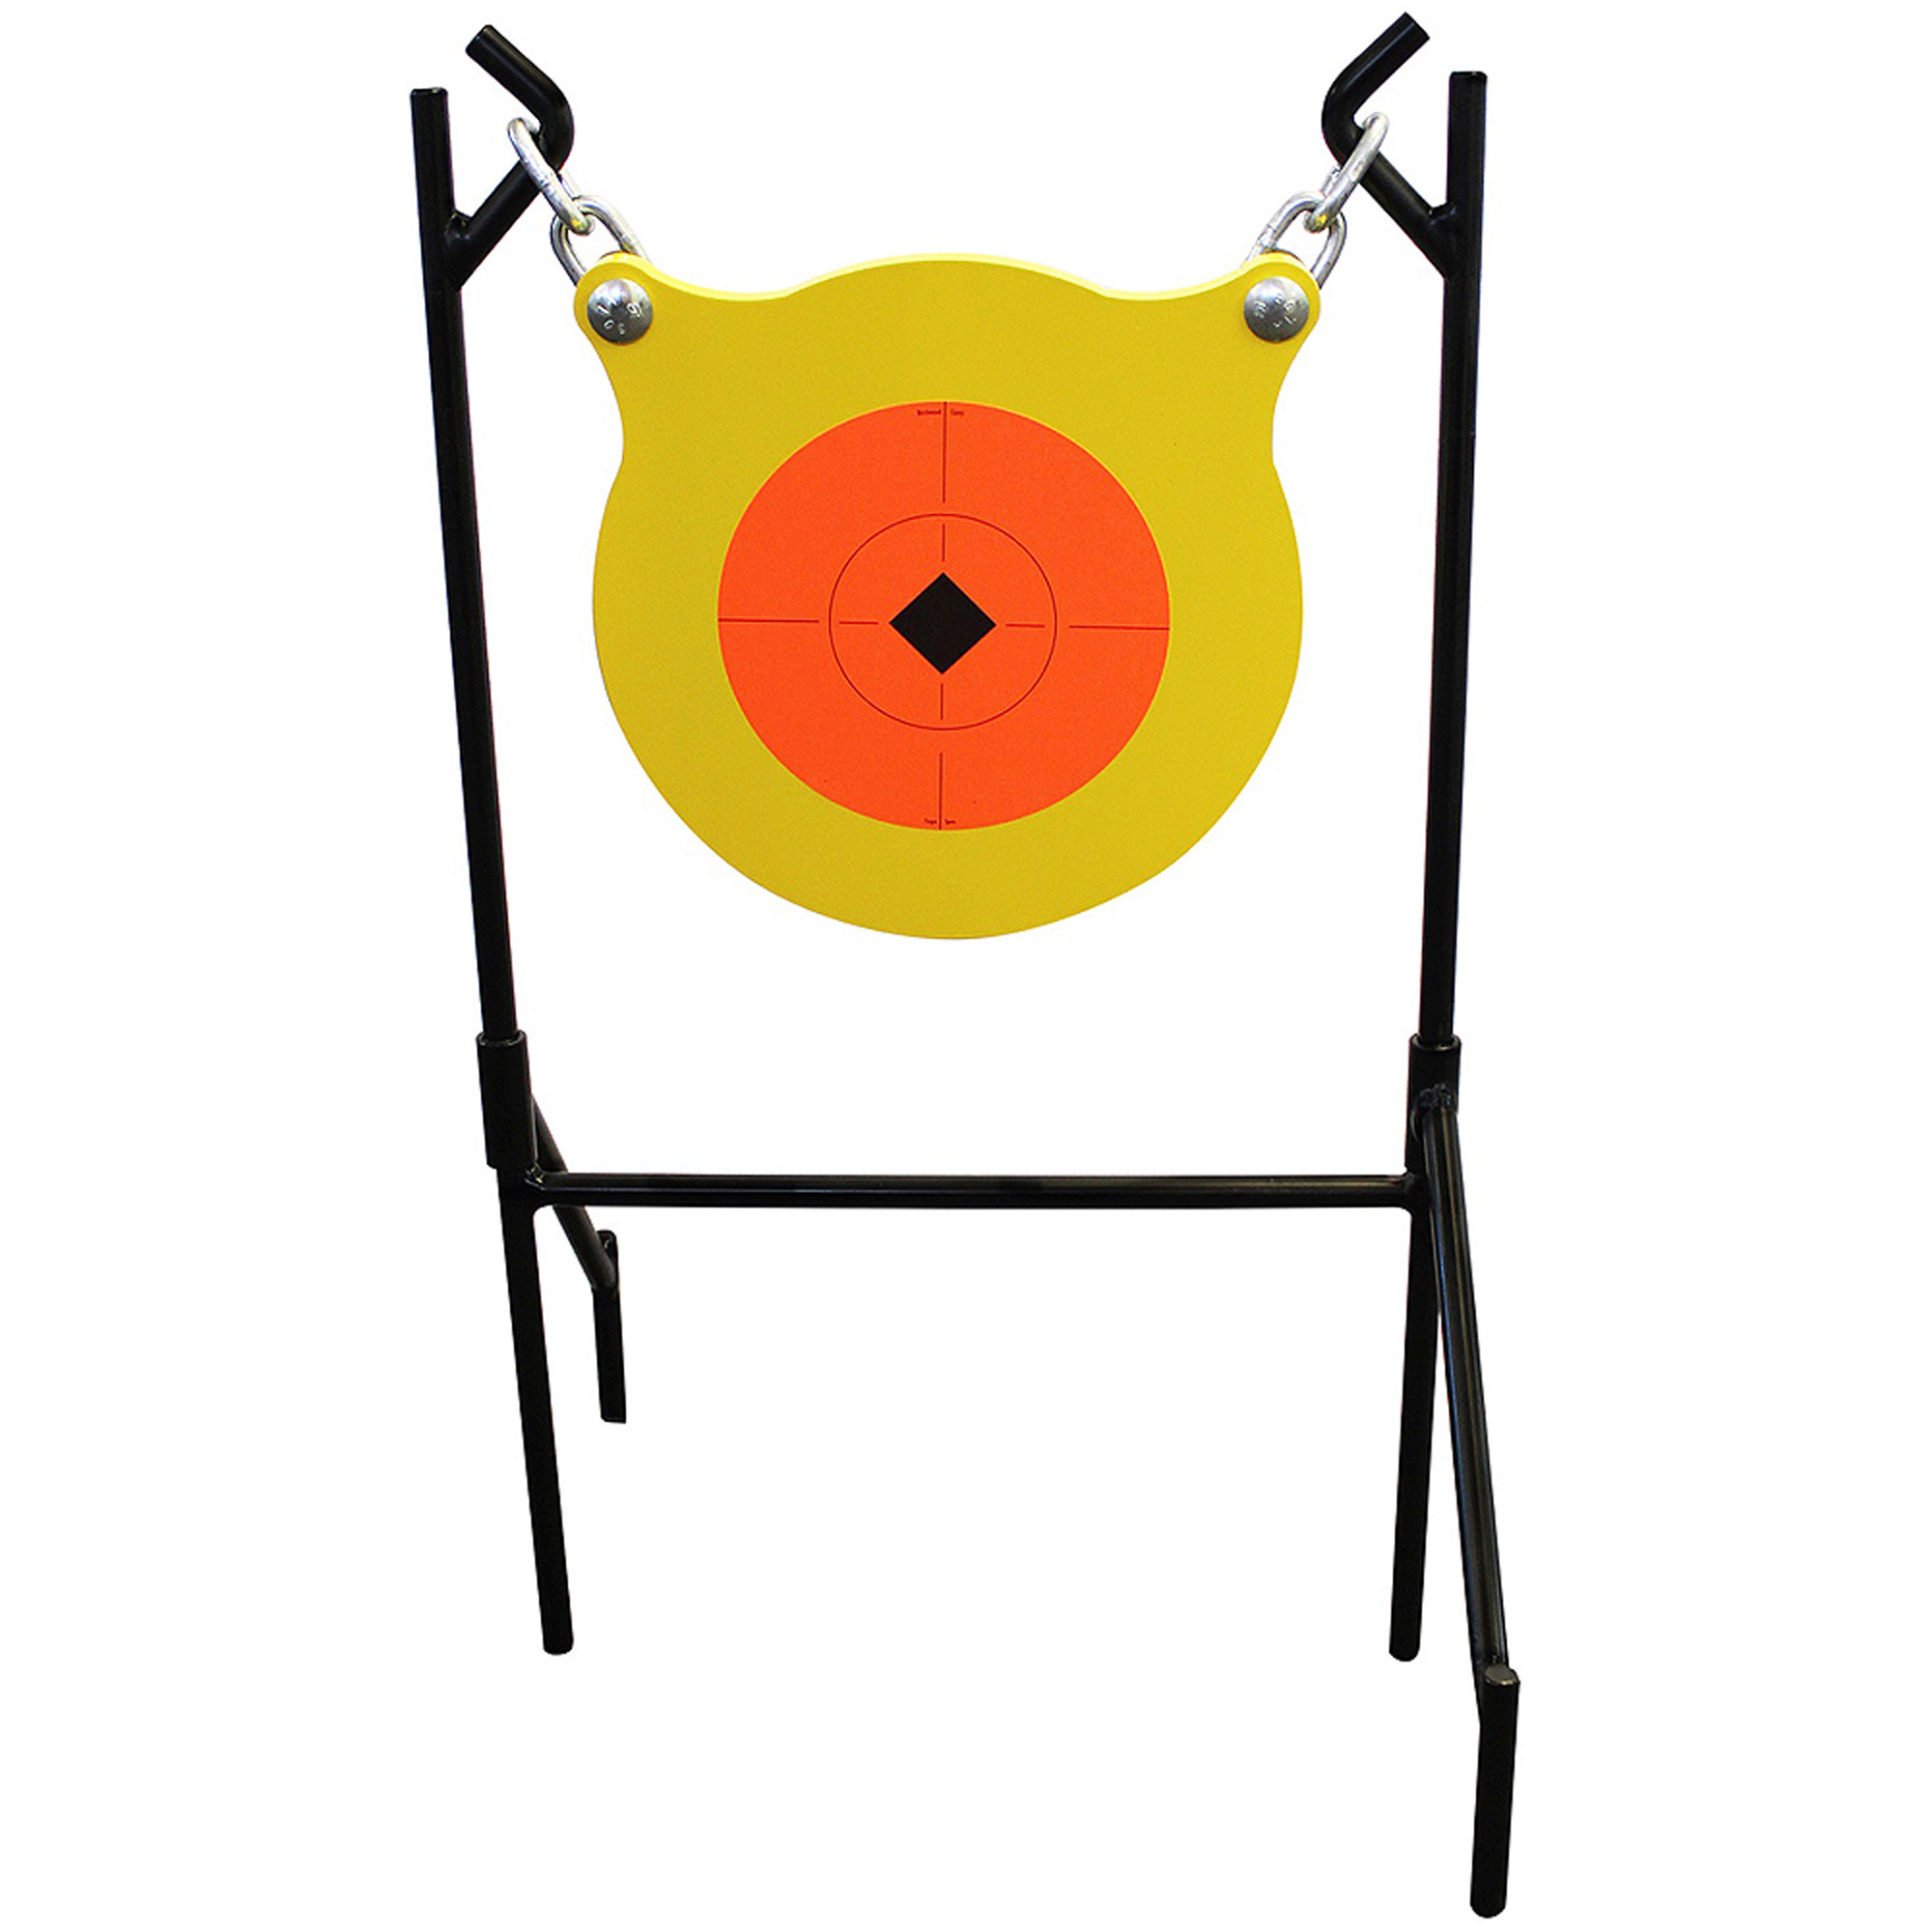 Birchwood Casey World of Targets Boomslang AR500 Gong Centerfire Target by Birchwood Casey